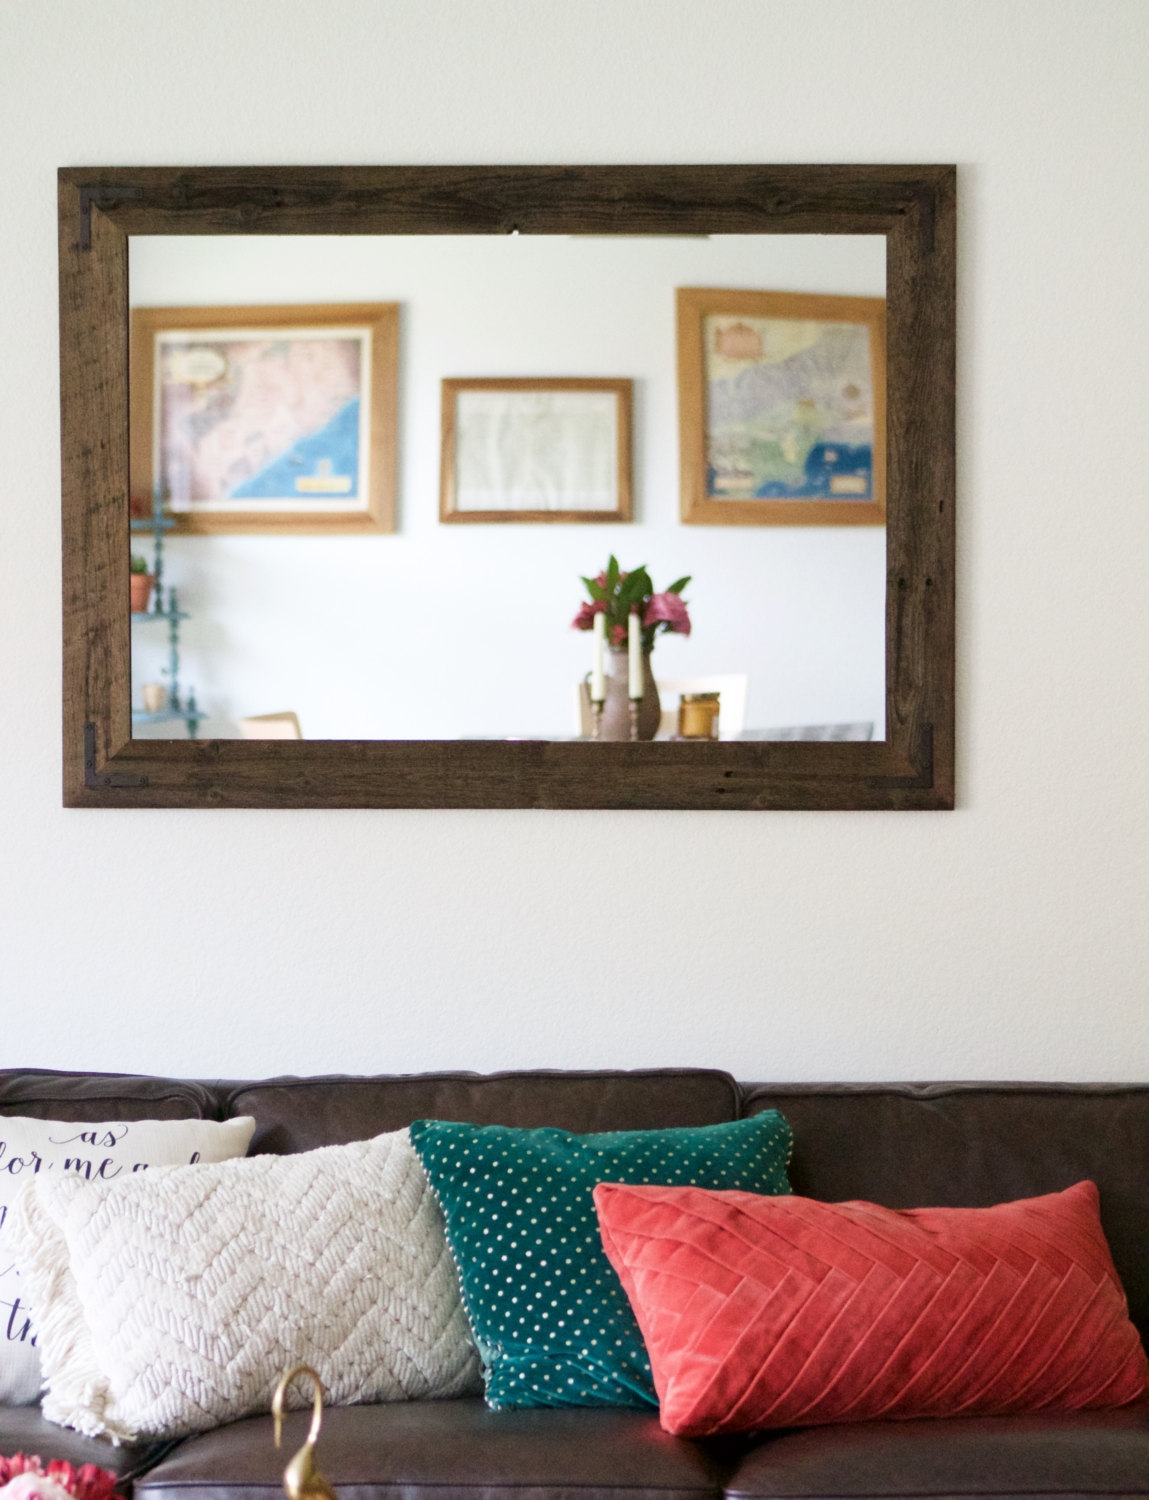 Large Turquoise Wall Mirror